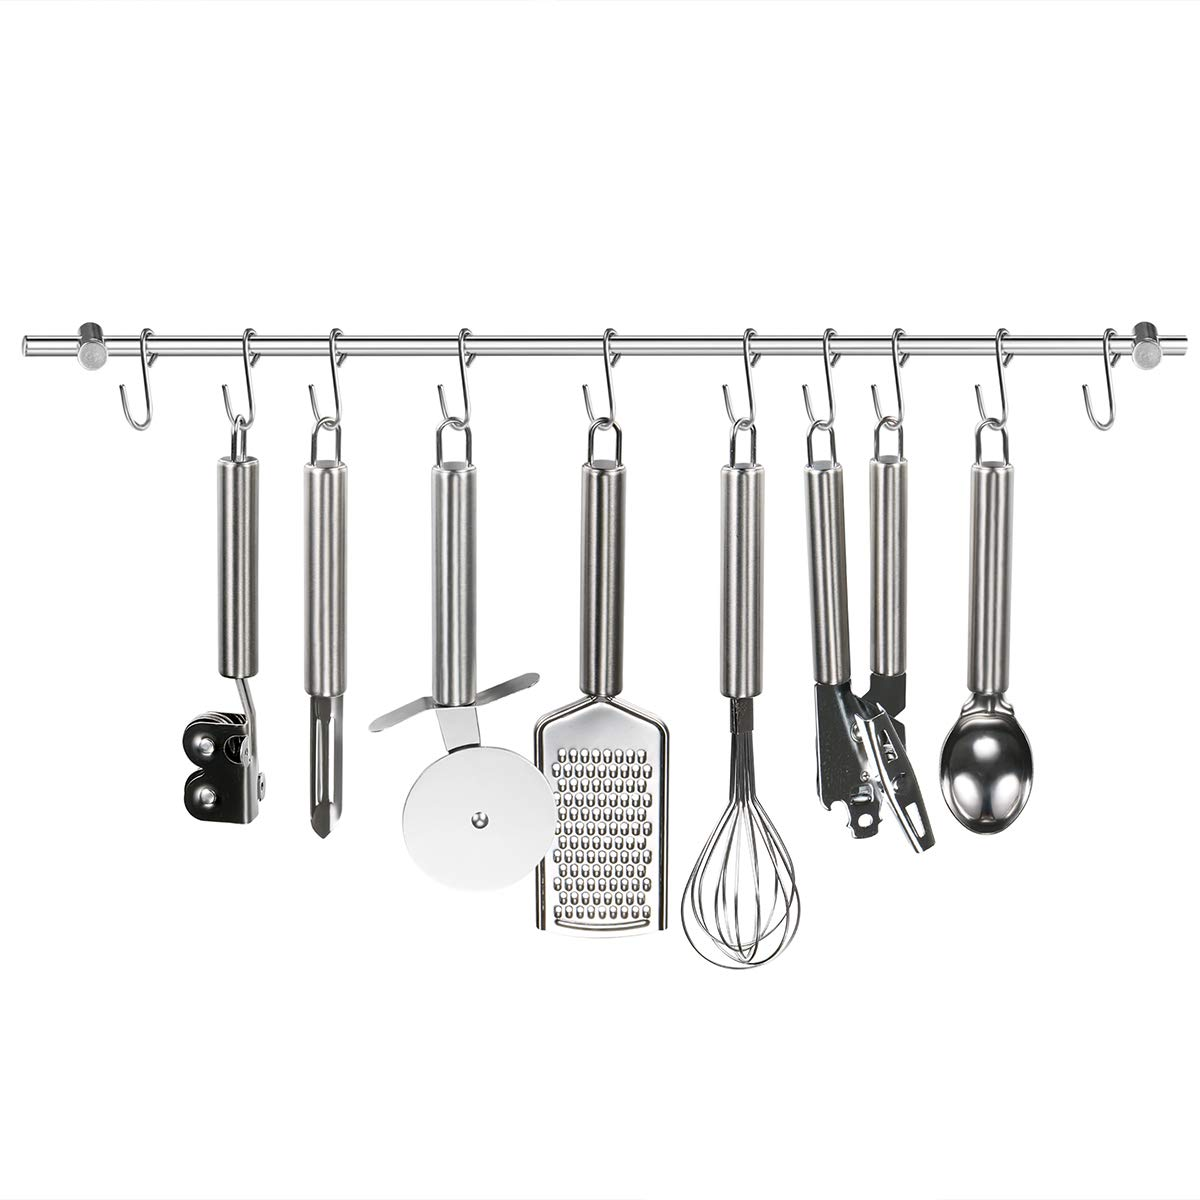 Kitchen Rail Rack HCHUANG Wall Rail with 22-Inch Wall Mounted Utensil Hanging Rack 304 Stainless Steel Hanger Hooks for Kitchen Tools, Pot, Towel (10 Sliding Hooks)